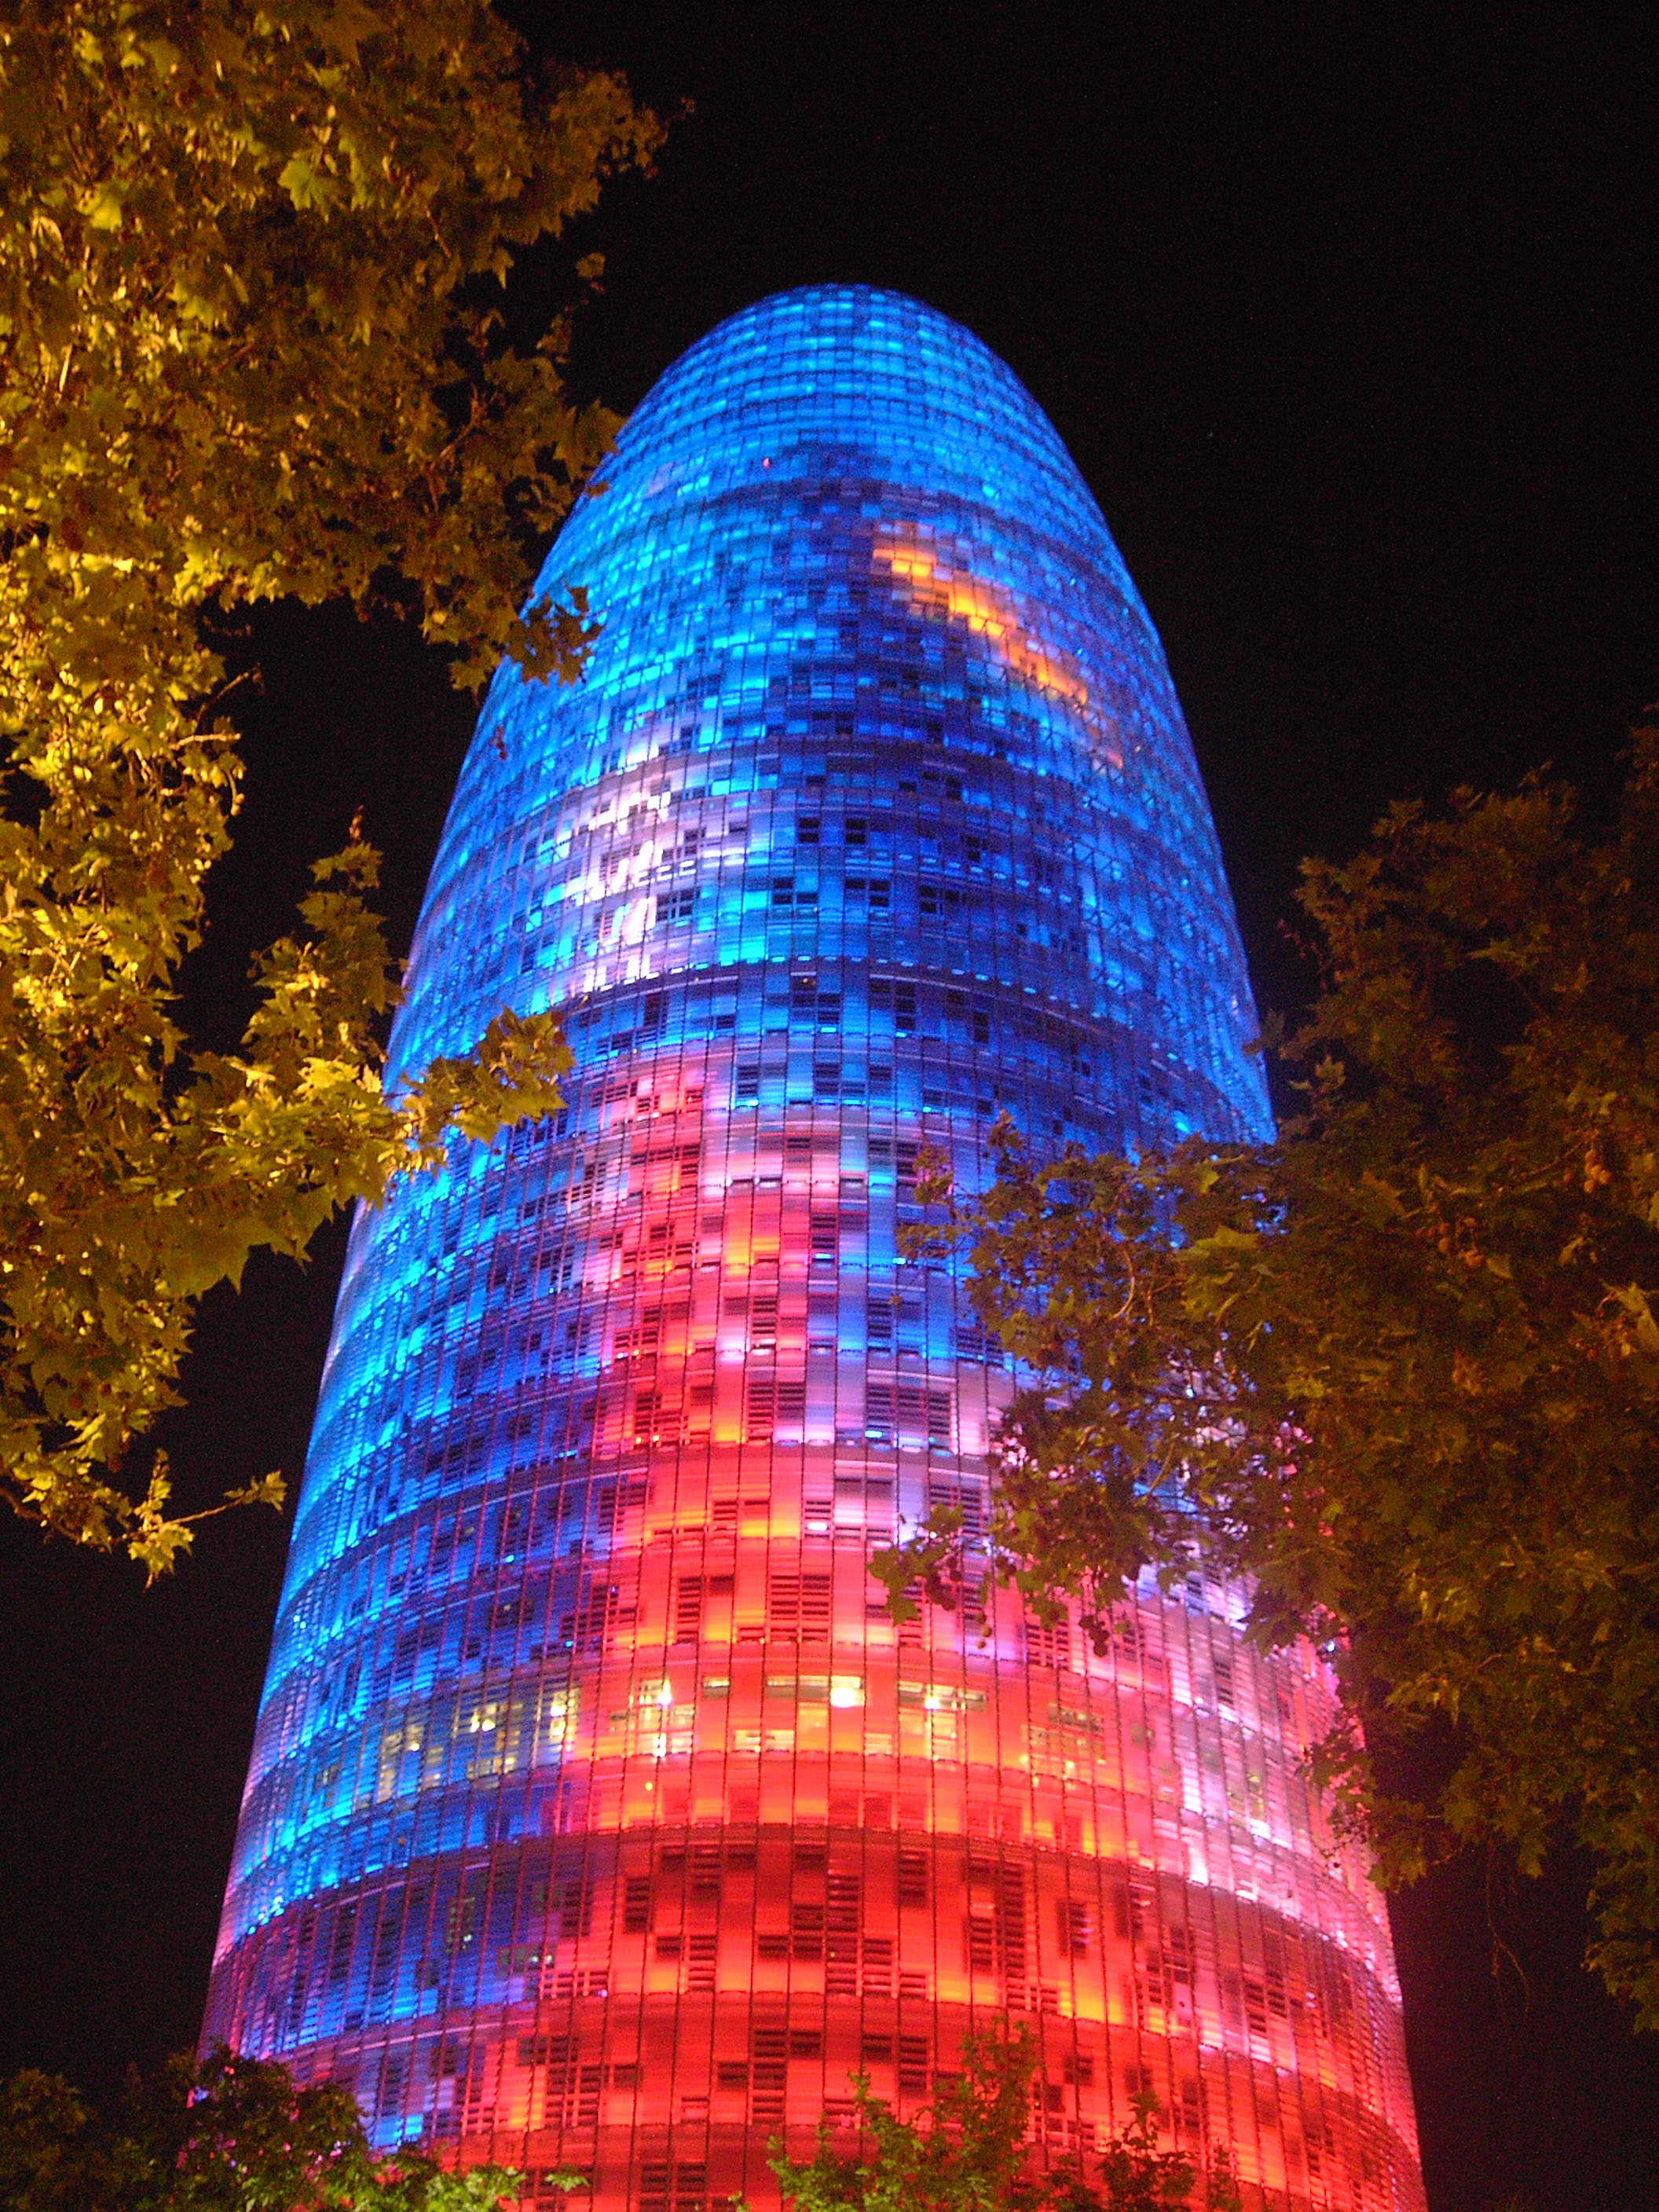 http://upload.wikimedia.org/wikipedia/commons/a/af/Barcelona_Torre_Agbar_01.jpg